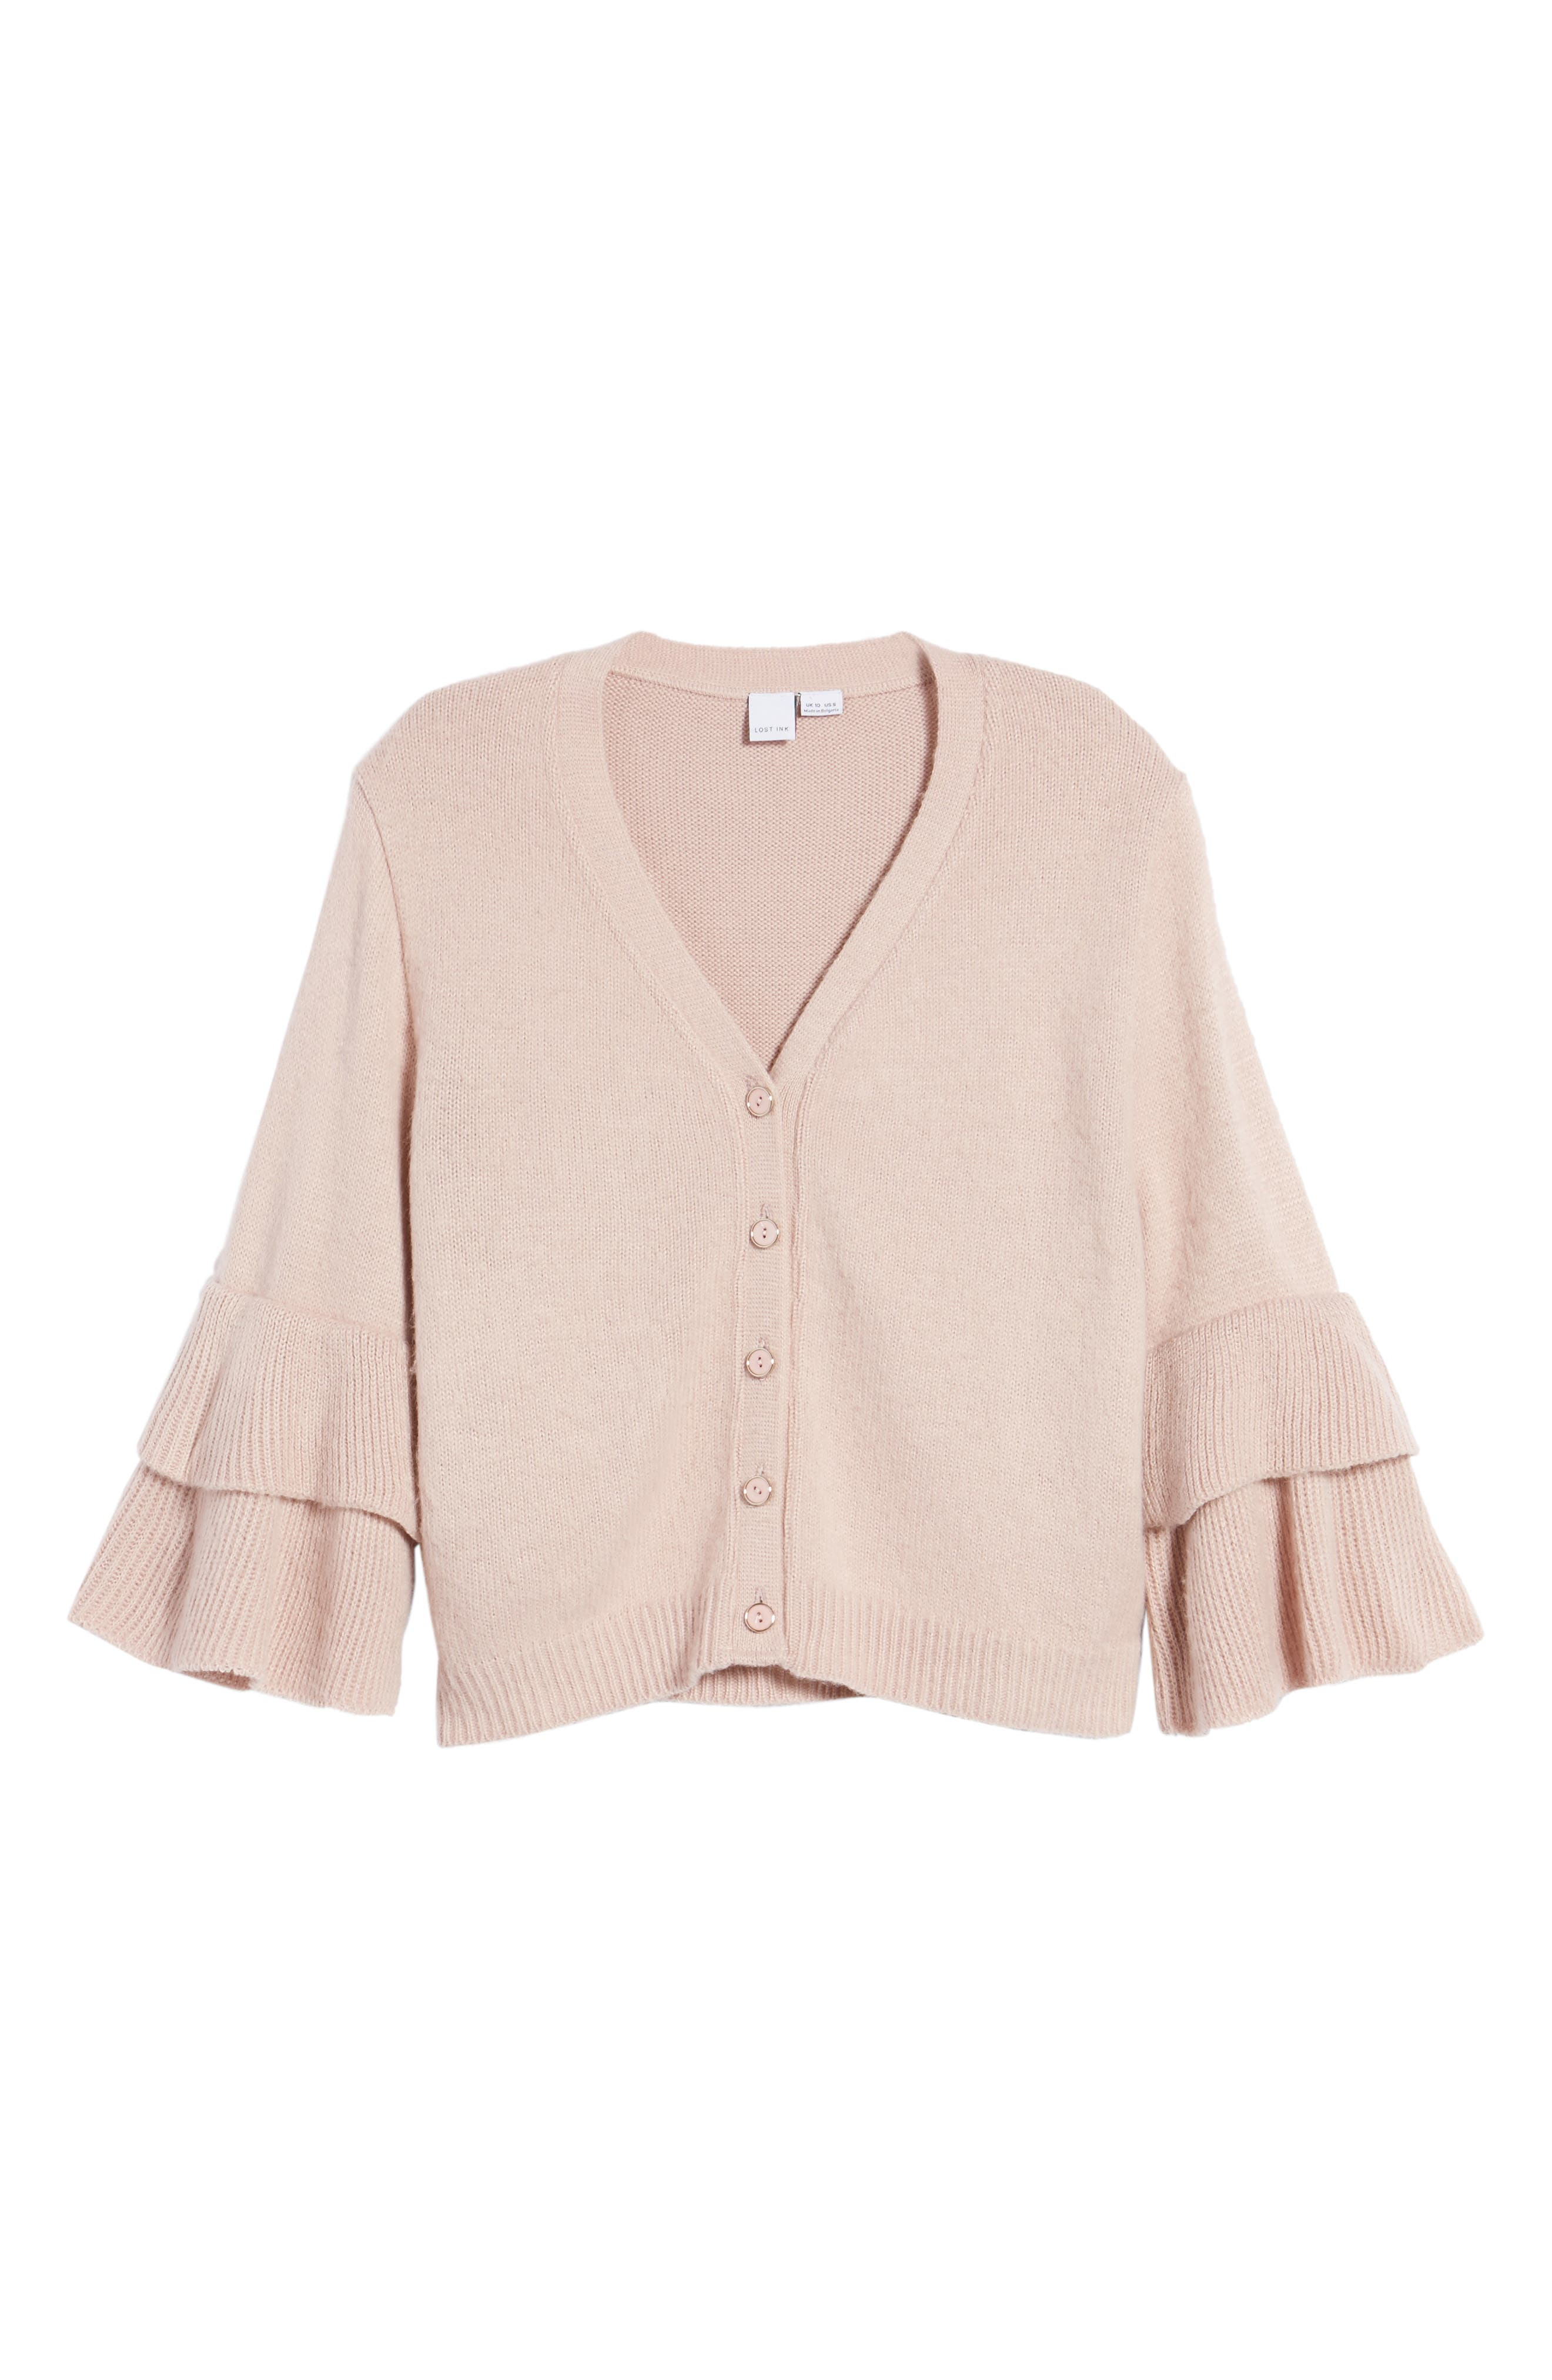 Tiered Sleeve Cardigan,                             Alternate thumbnail 7, color,                             Pink